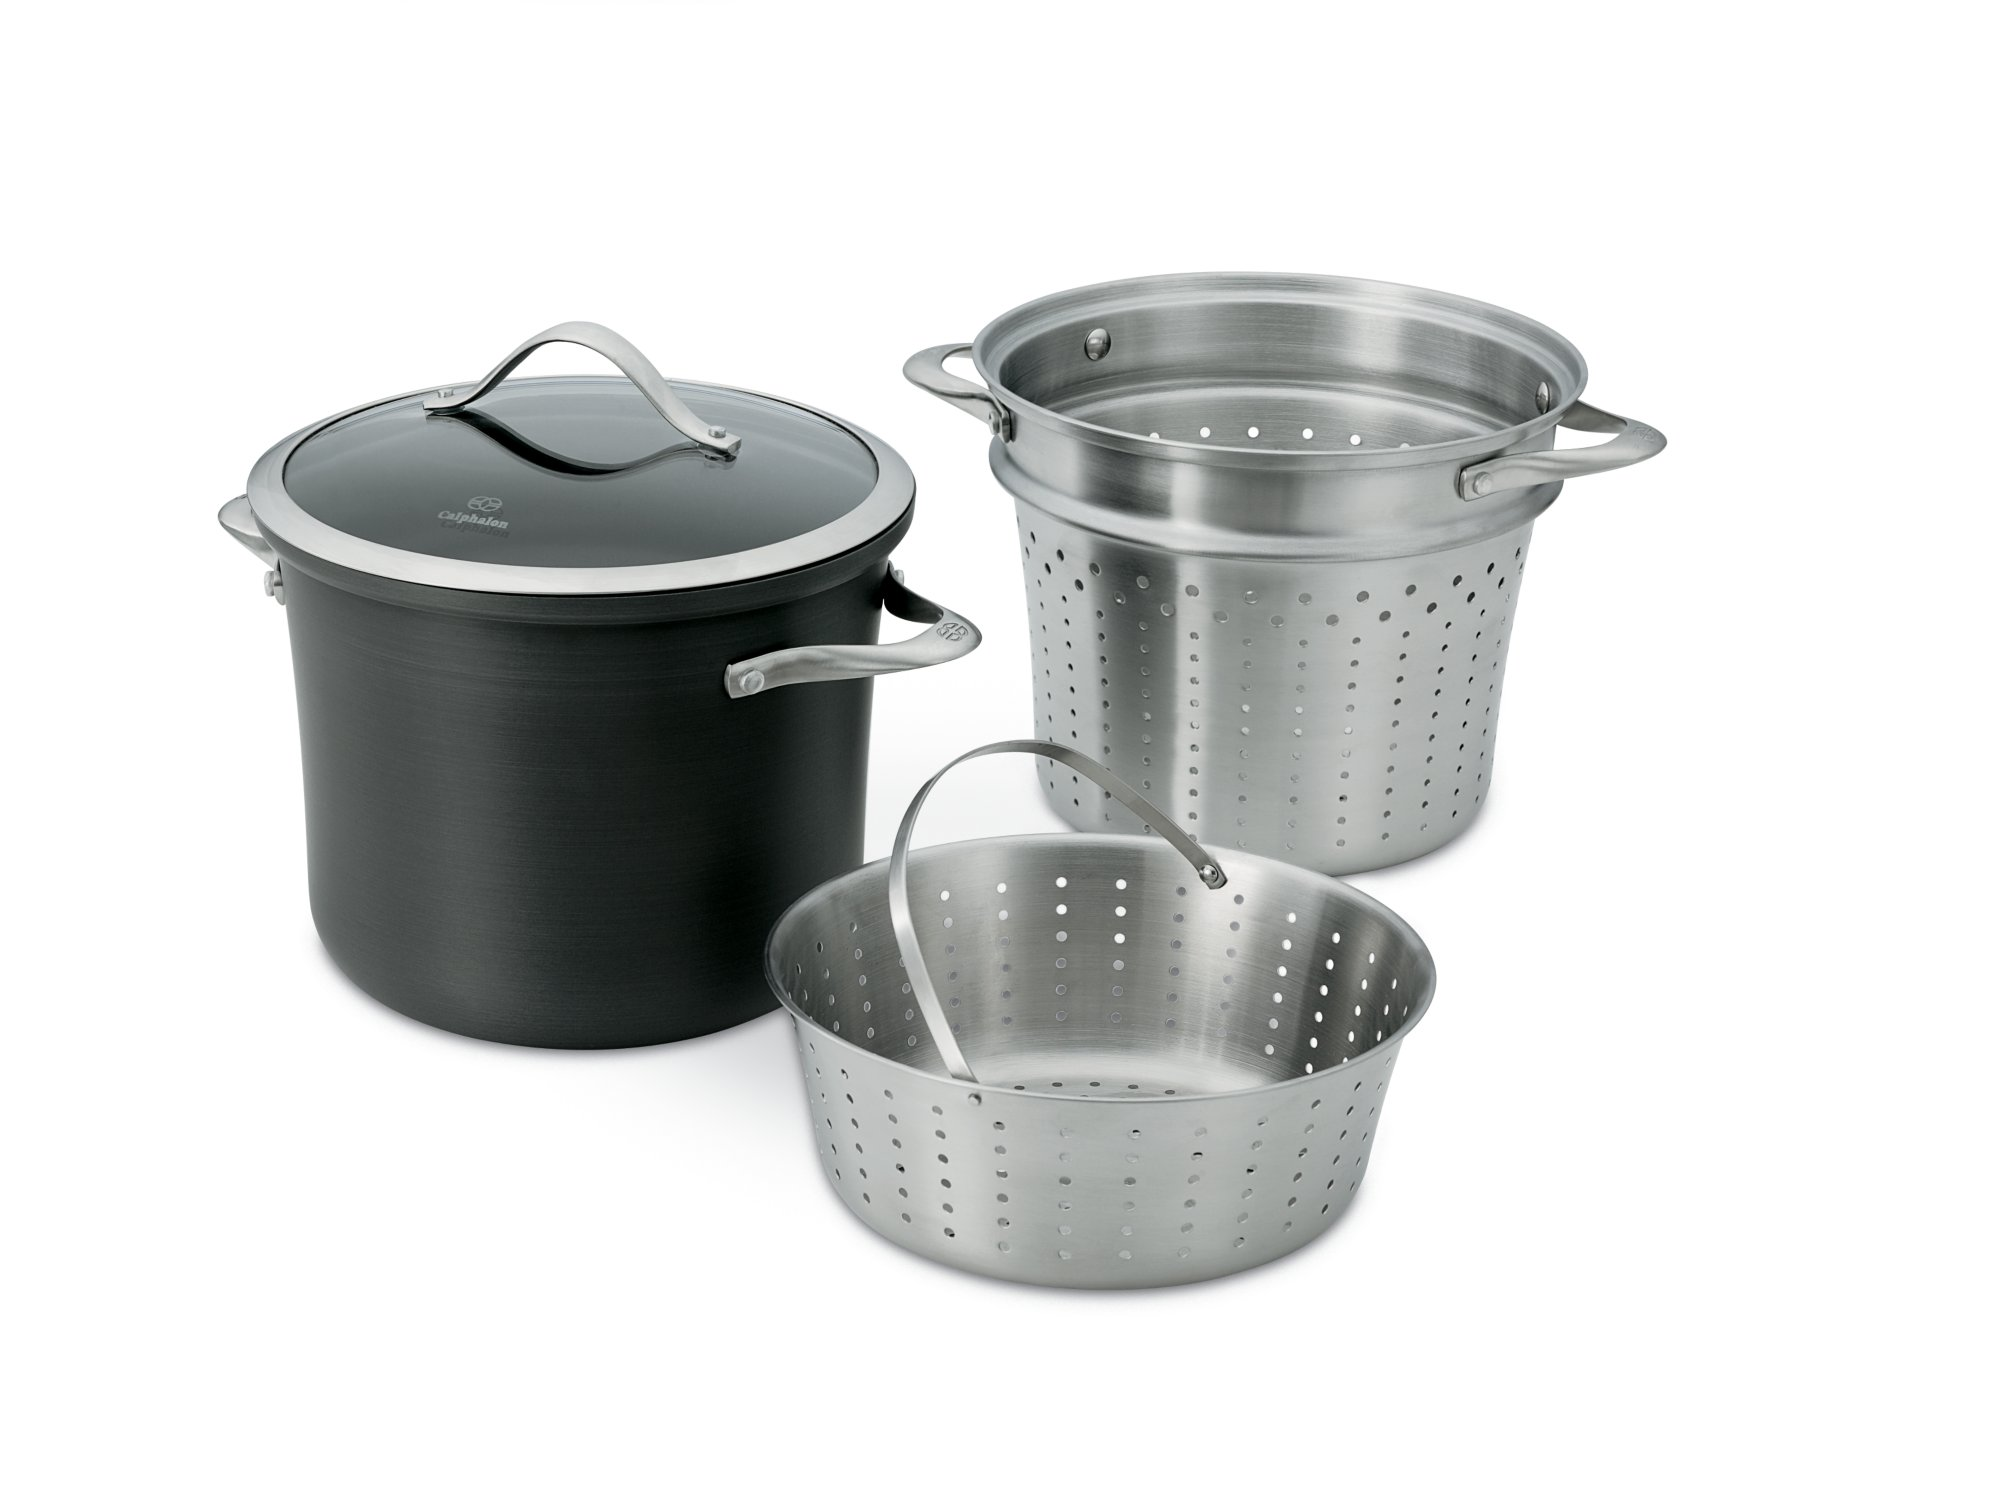 Calphalon Contemporary Nonstick 3-pc. Multi-Pot Set